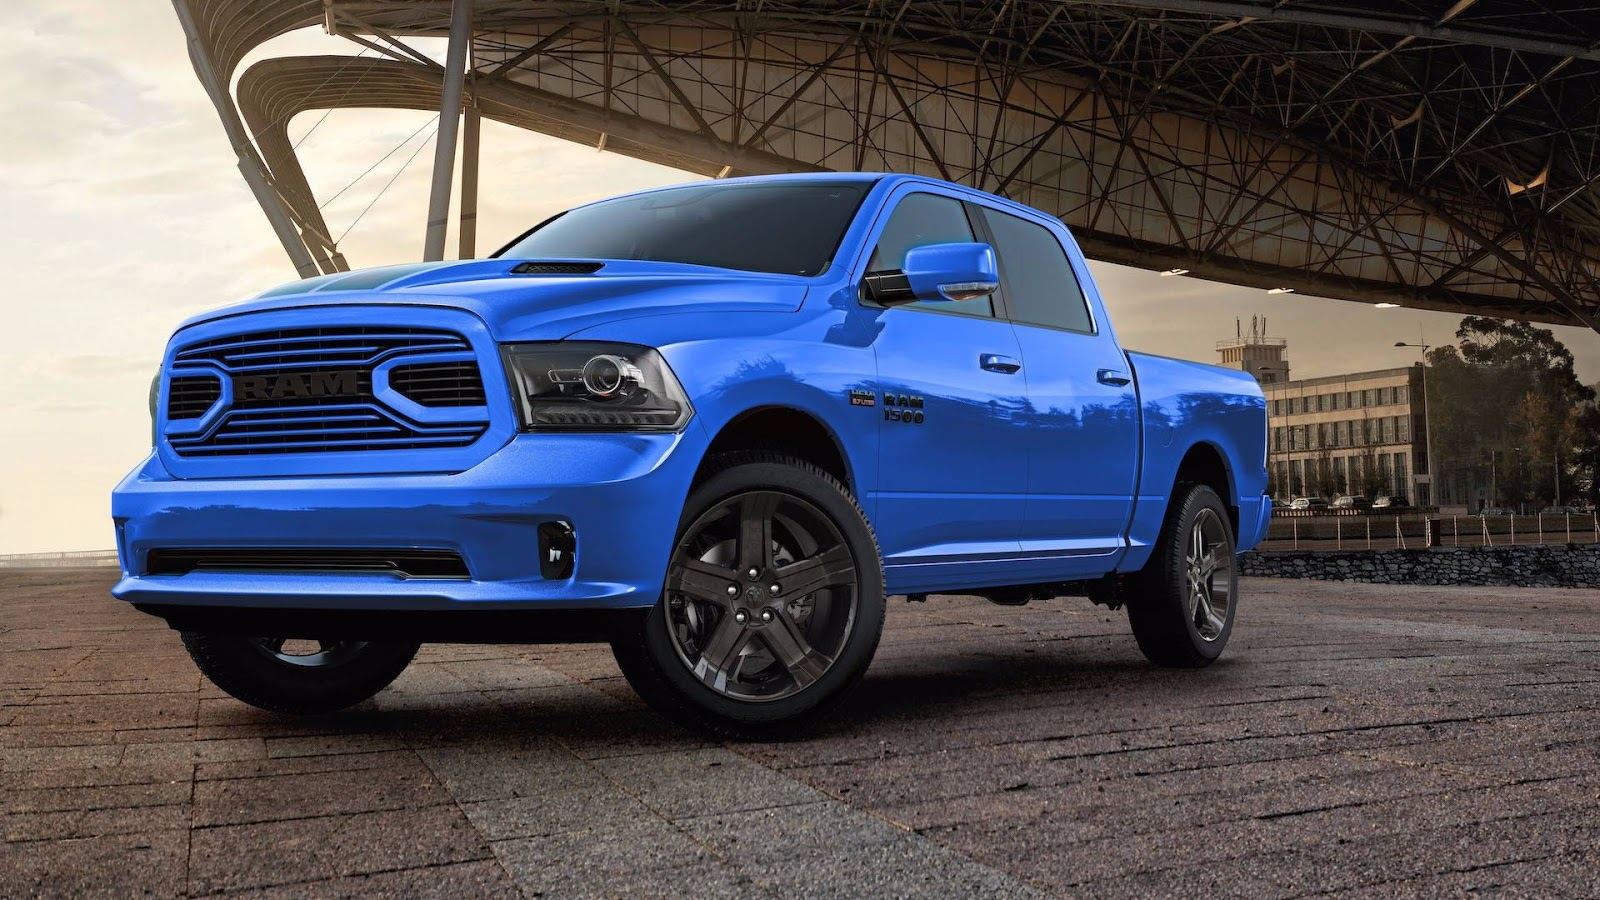 2018 ram 1500 hydro blue sport edition gets a racy french kiss carscoops. Black Bedroom Furniture Sets. Home Design Ideas